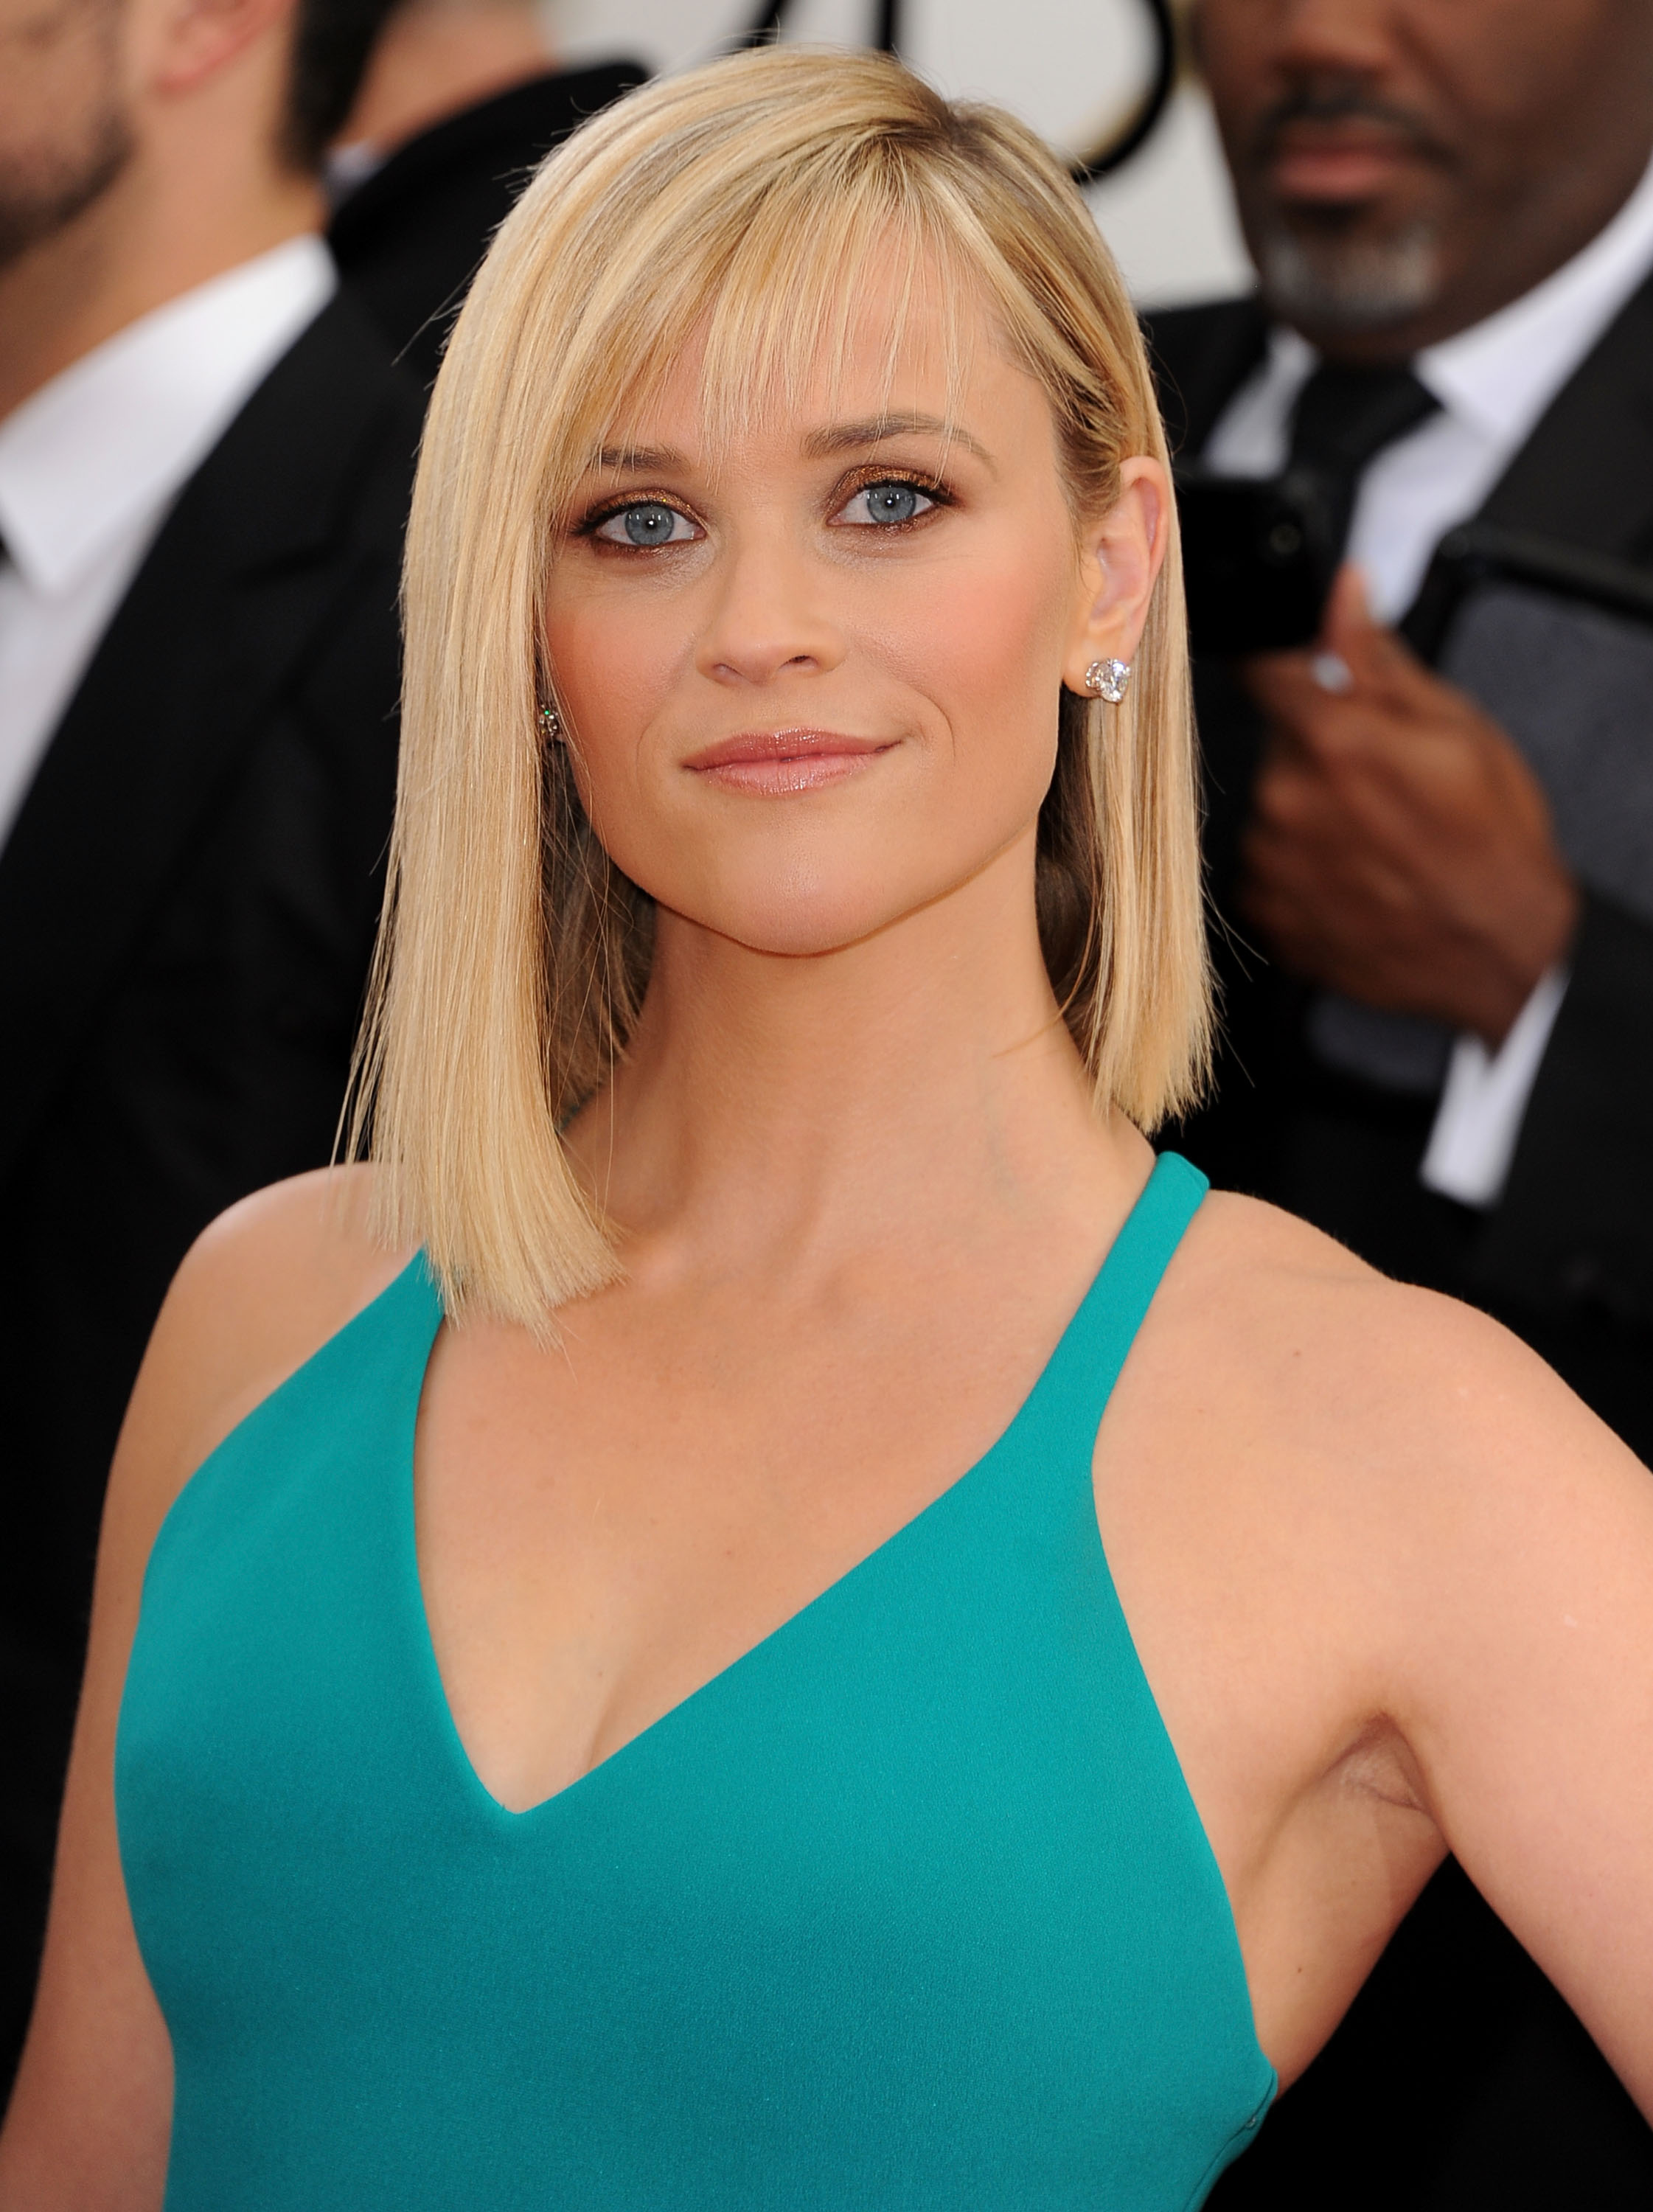 22 lob haircuts on celebrities - best long bob hairstyle ideas